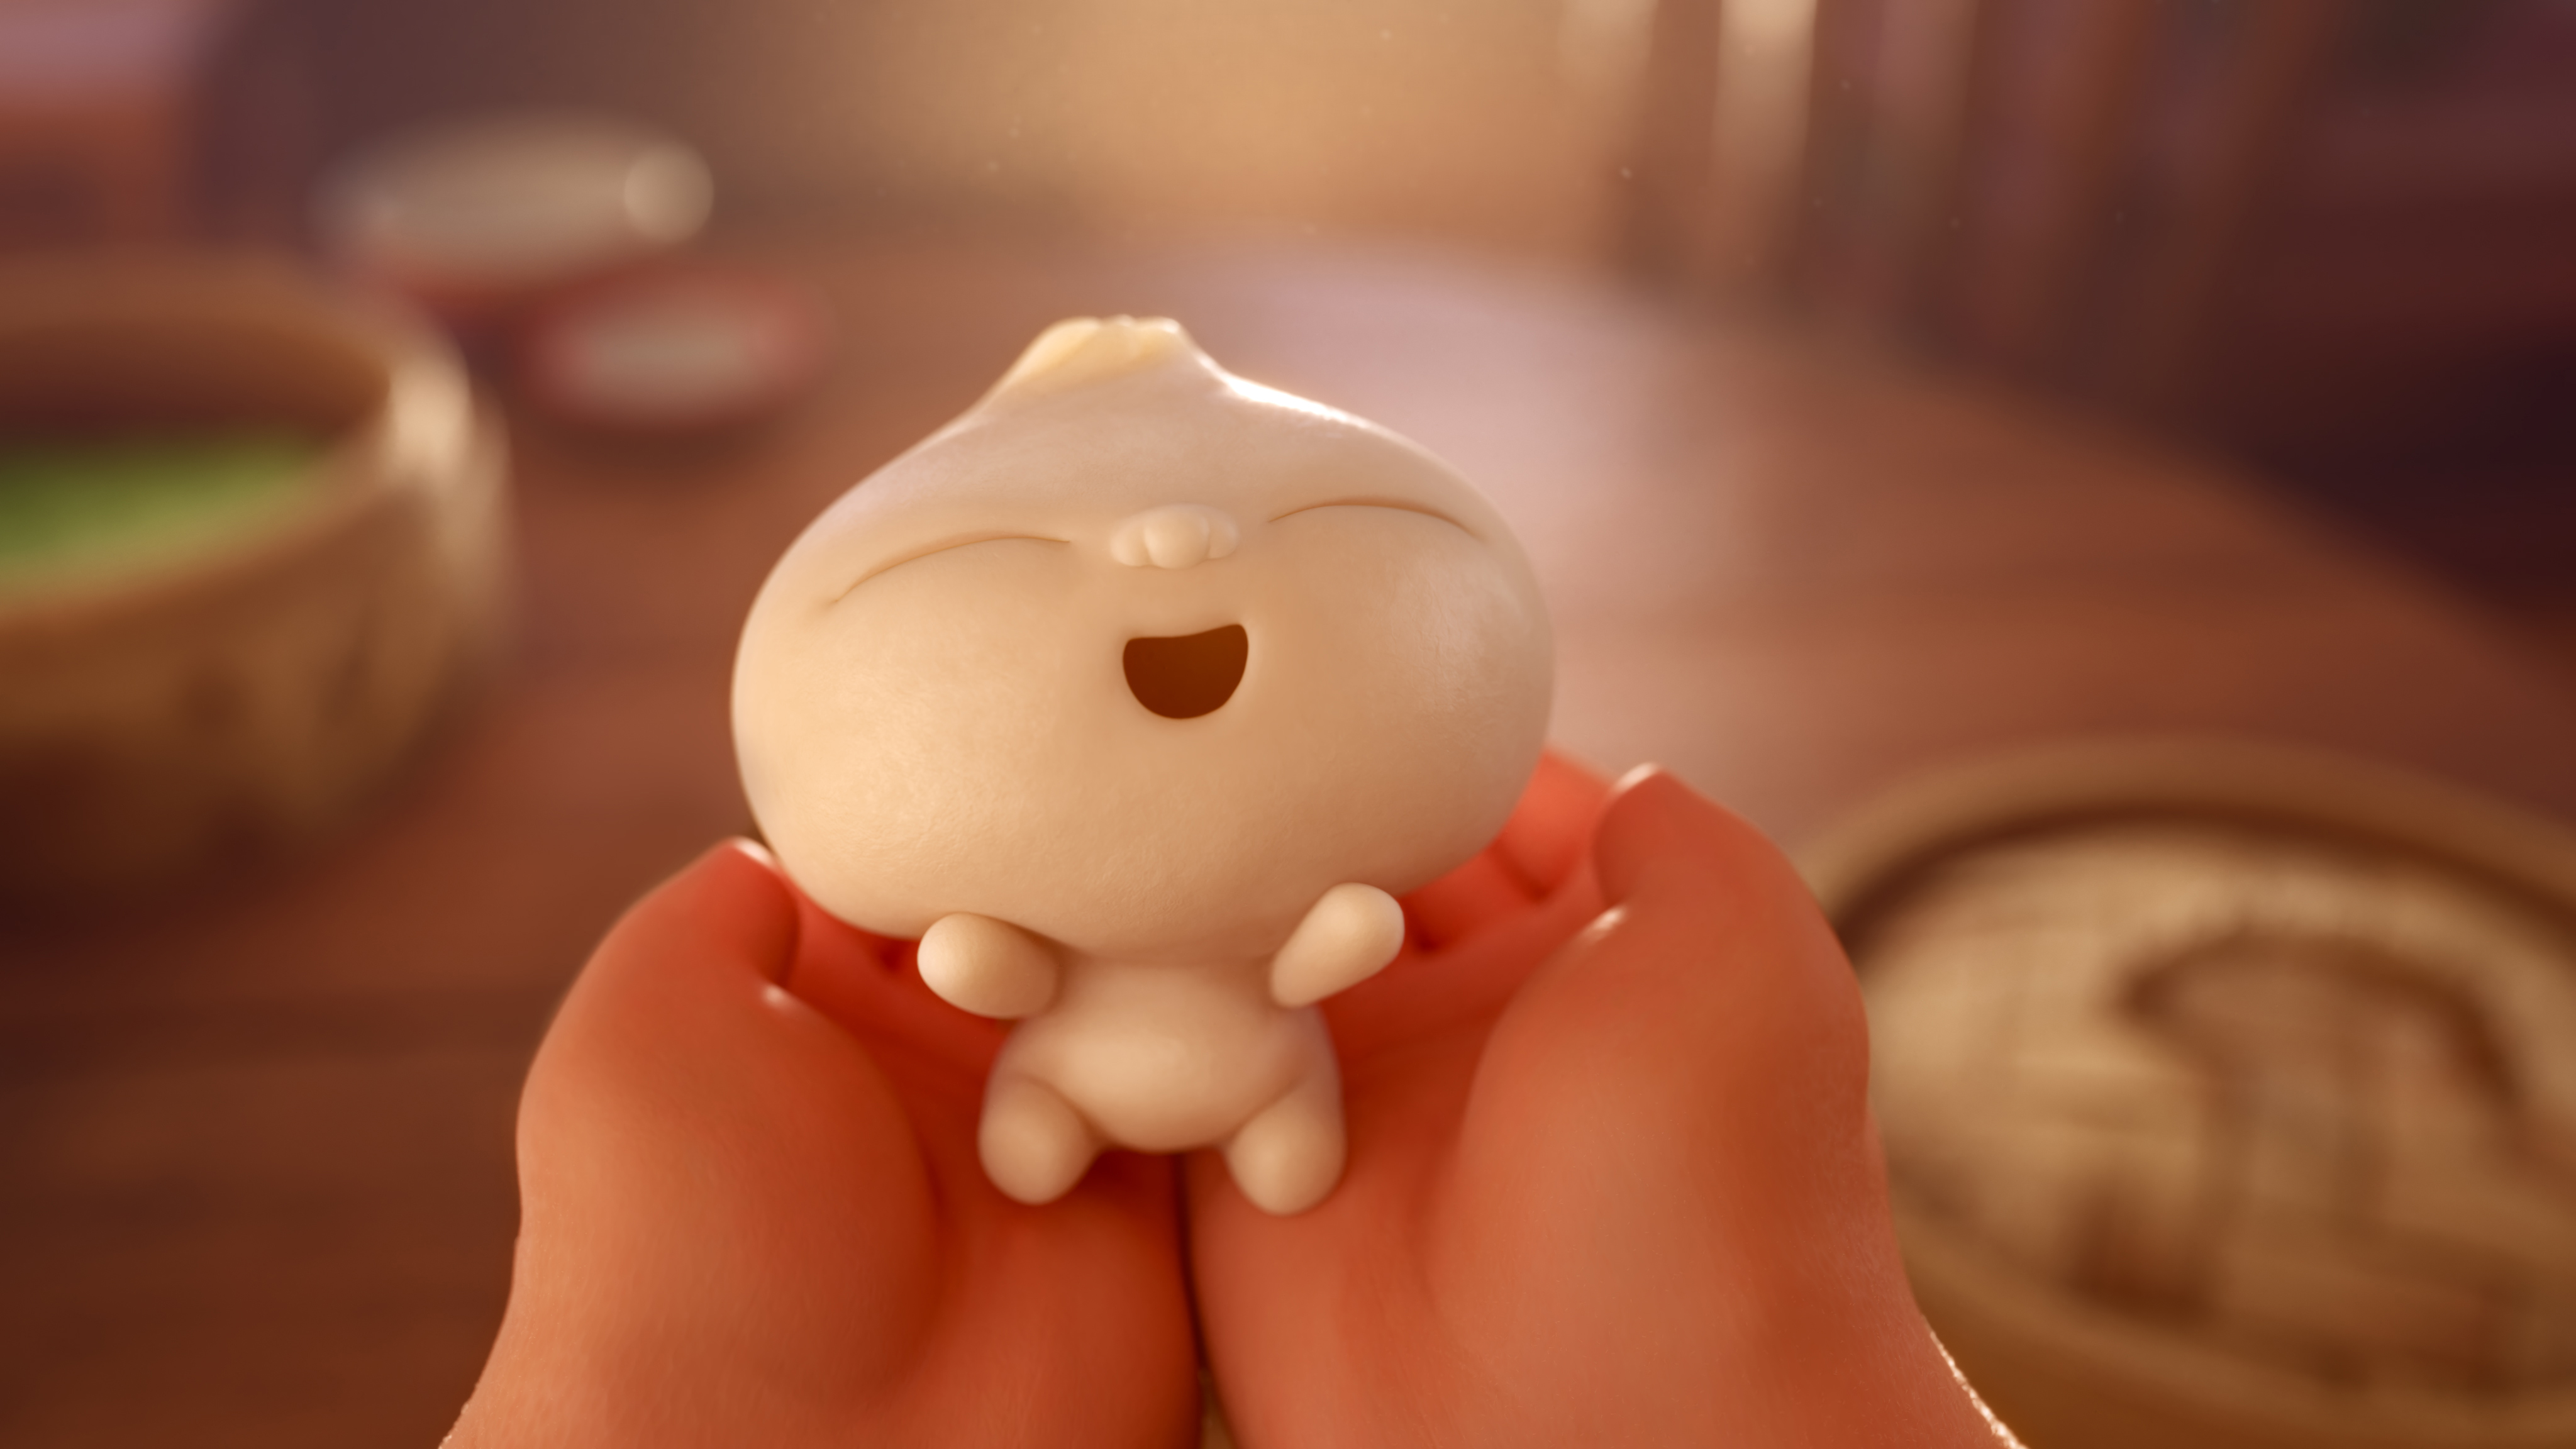 """DUMPLING BOY -- In Disney•Pixar's all-new short """"Bao,"""" a dumpling springs to life as a lively, giggly, dumpling boy, giving an agingChinese mom another chance at motherhood.When Dumpling starts growing up fast, however, Mom must come to the realization that nothing stays cute and small forever.Directed by Domee Shi, """"Bao"""" opens in theaters onJune 15, 2018, in front of""""Incredibles 2."""" ©2018 Disney•Pixar. All Rights Reserved."""